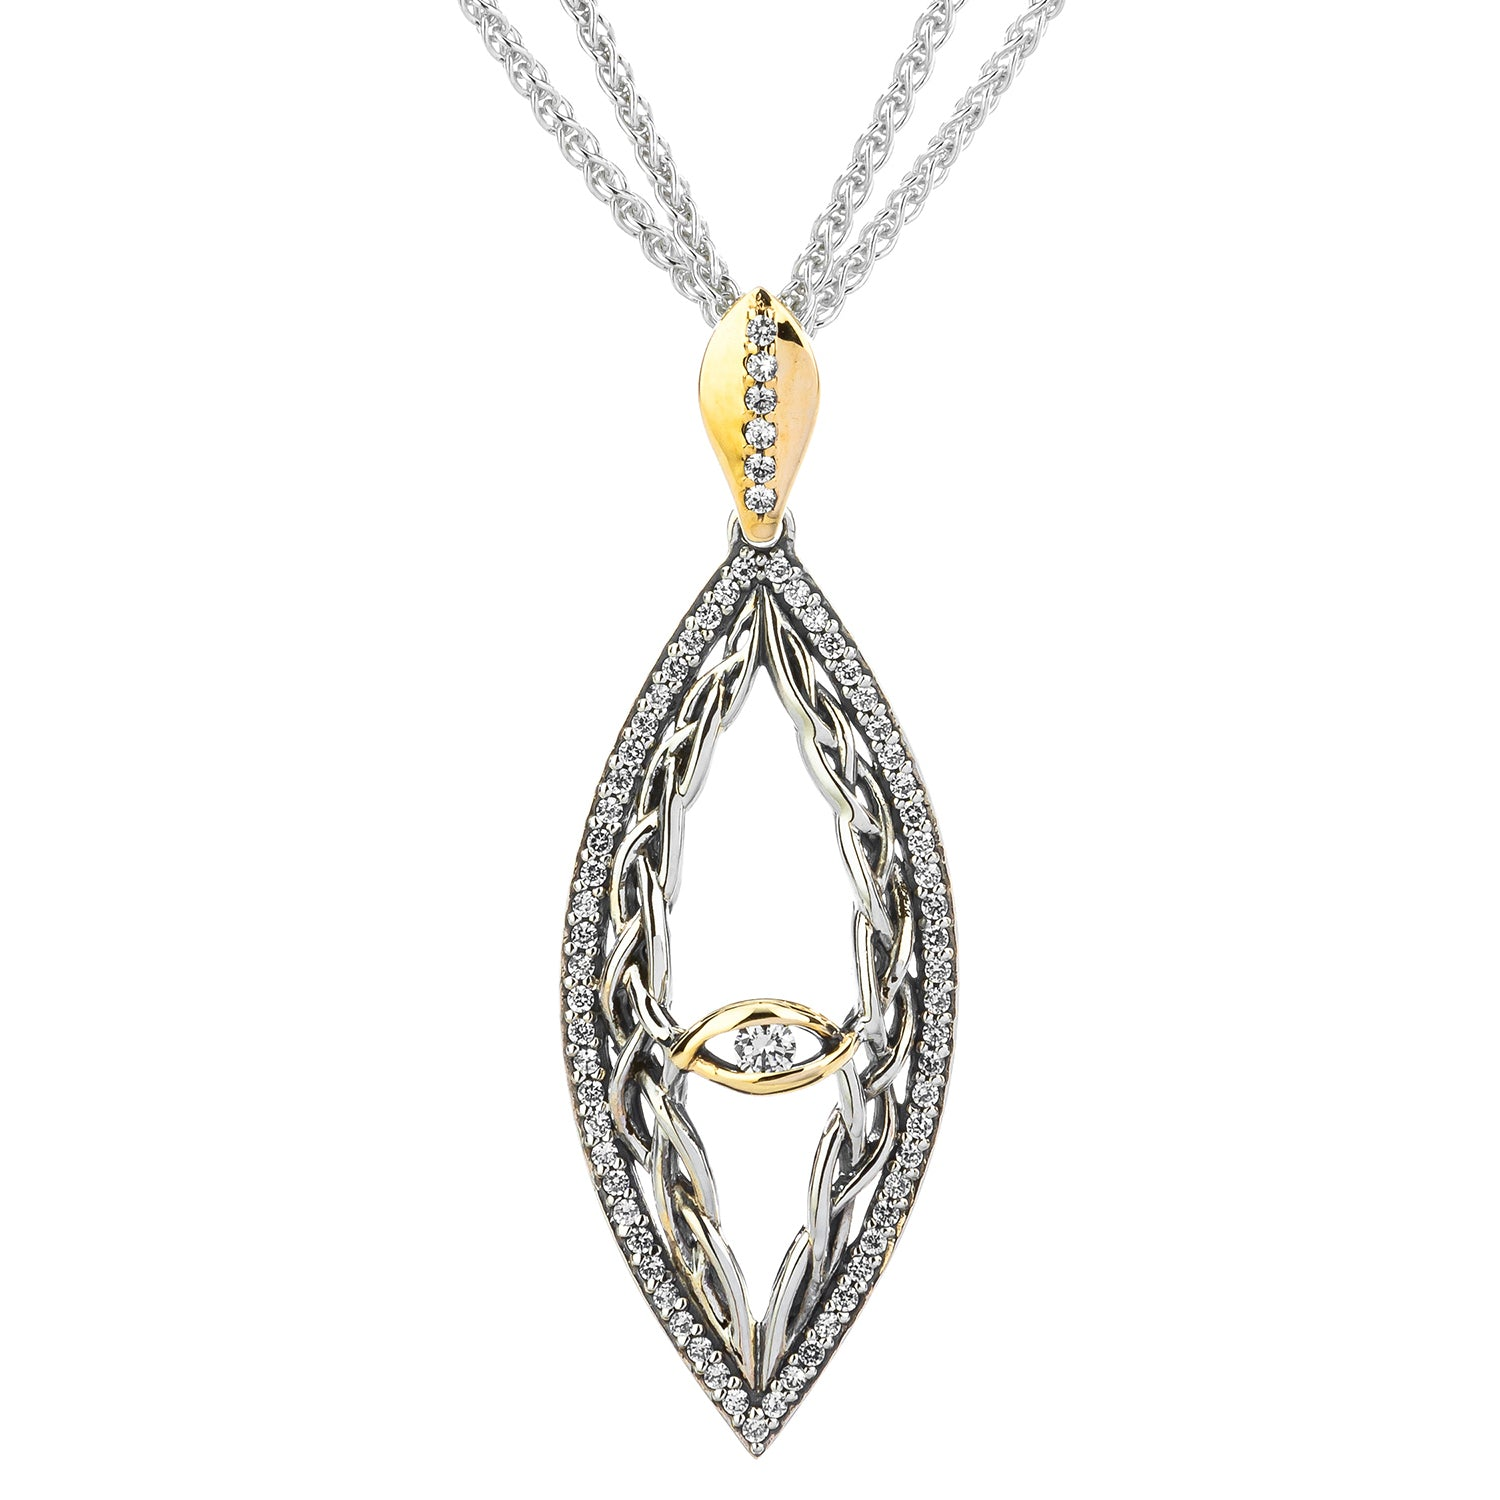 Pendant 10k CZ Intertwining Gateway Pendant from welch and company jewelers near syracuse ny